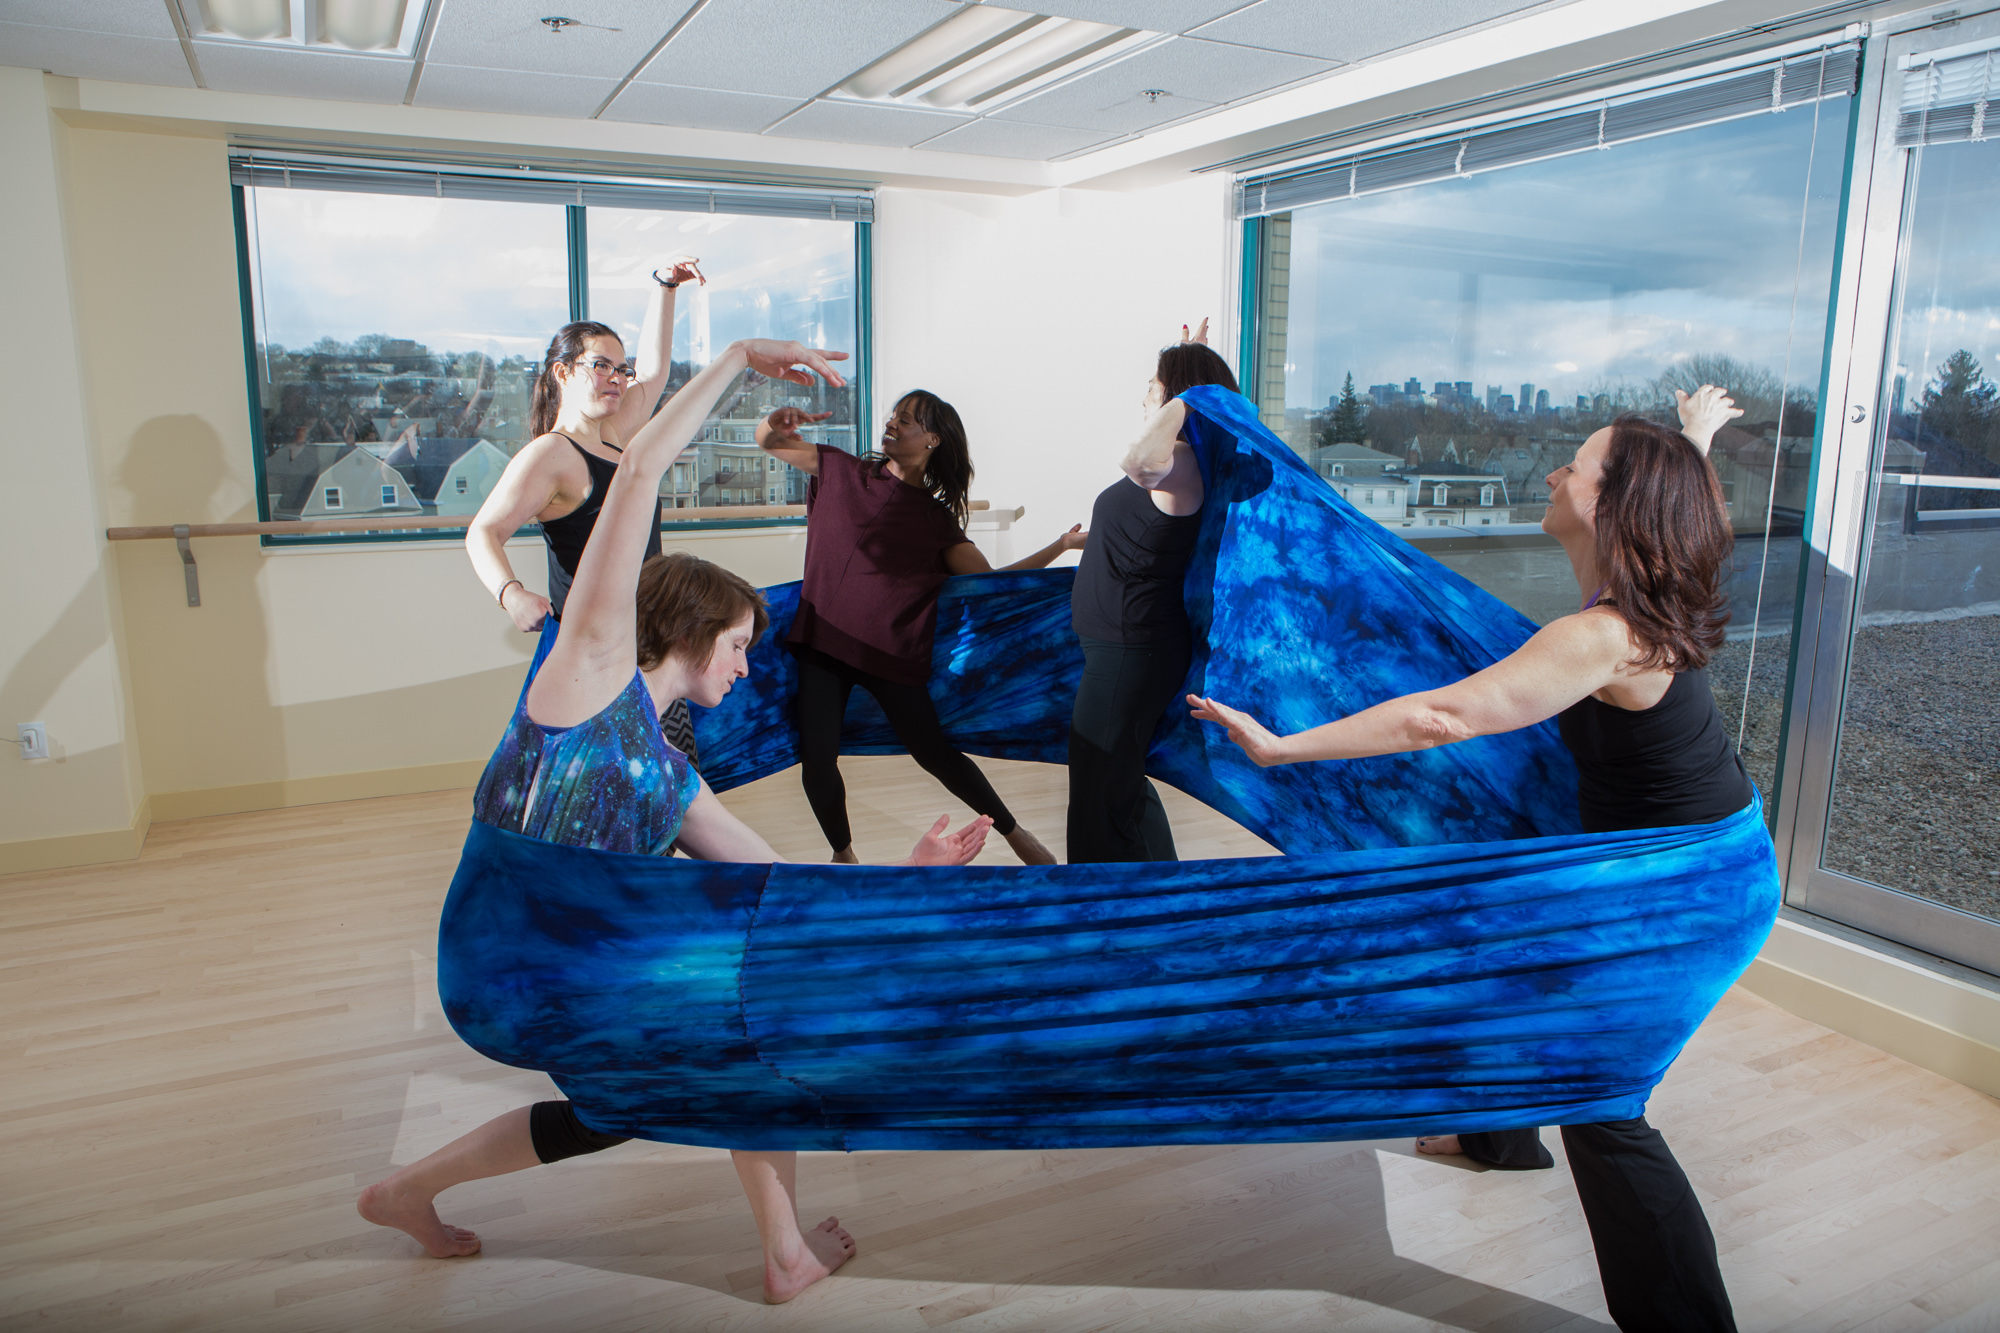 Dancers as part of a movement therapy class in a studio dancing with fabric.